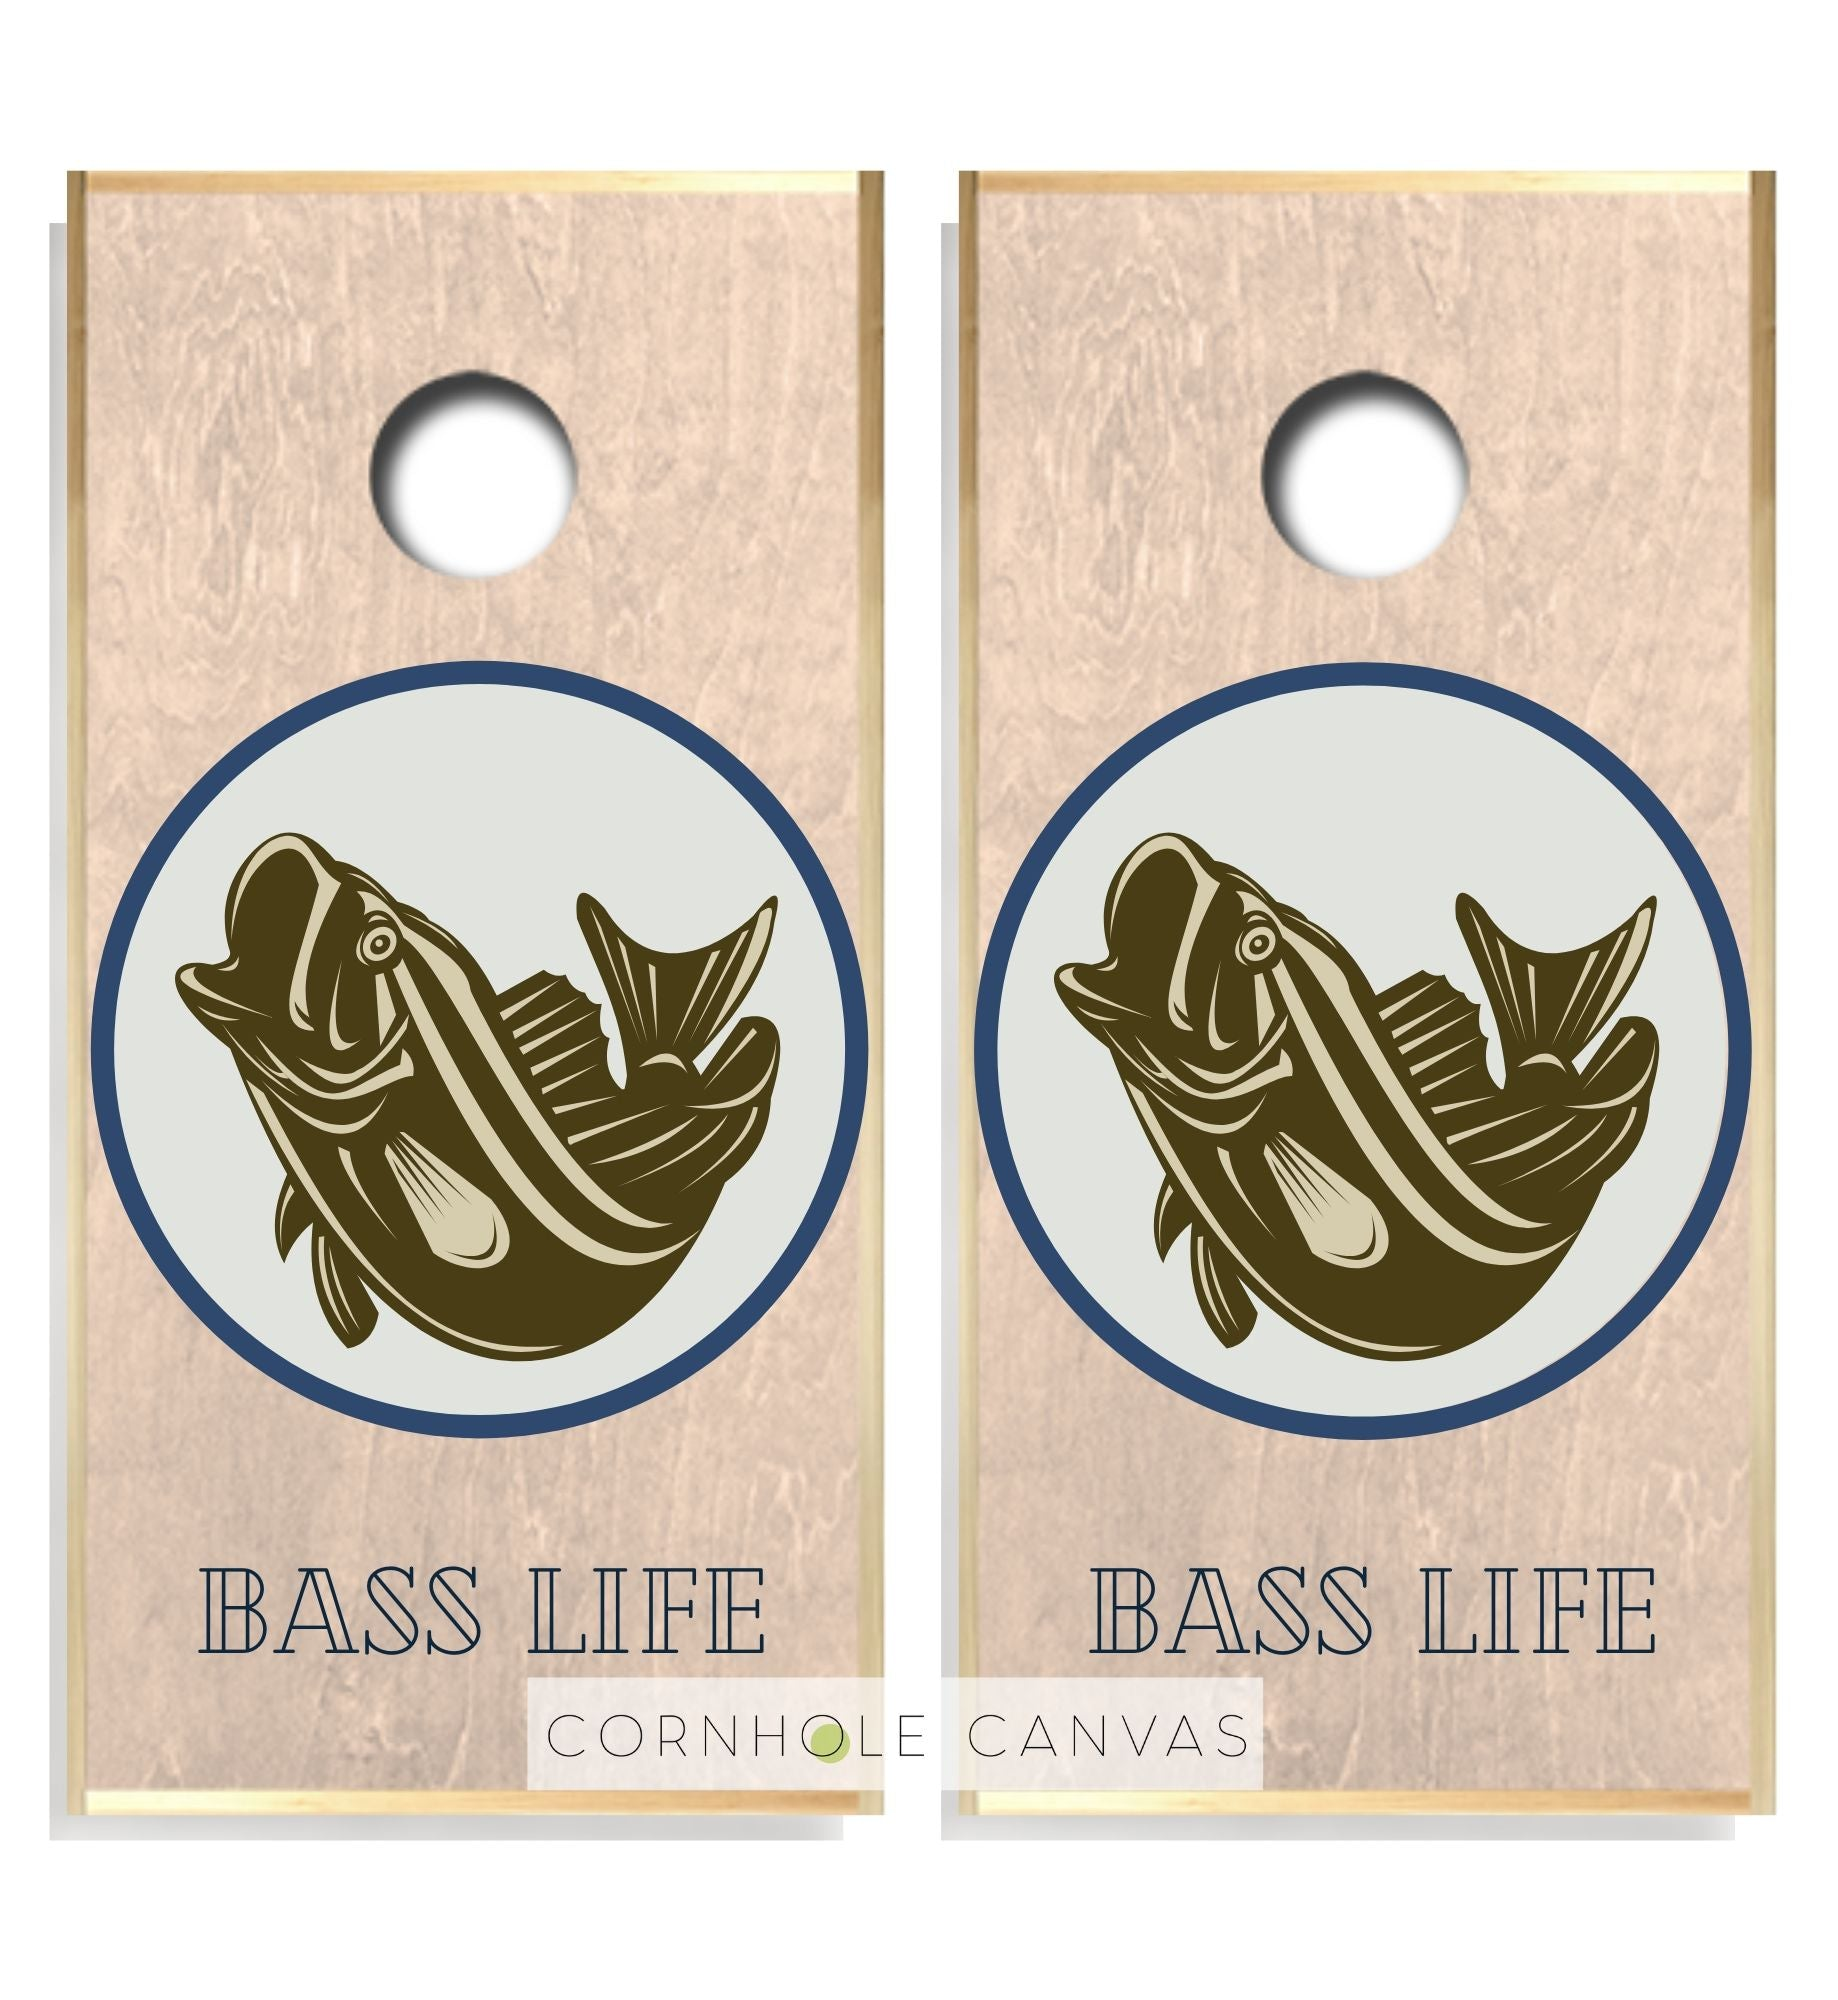 Regulation cornhole boards. Fishing theme. Premium quality.